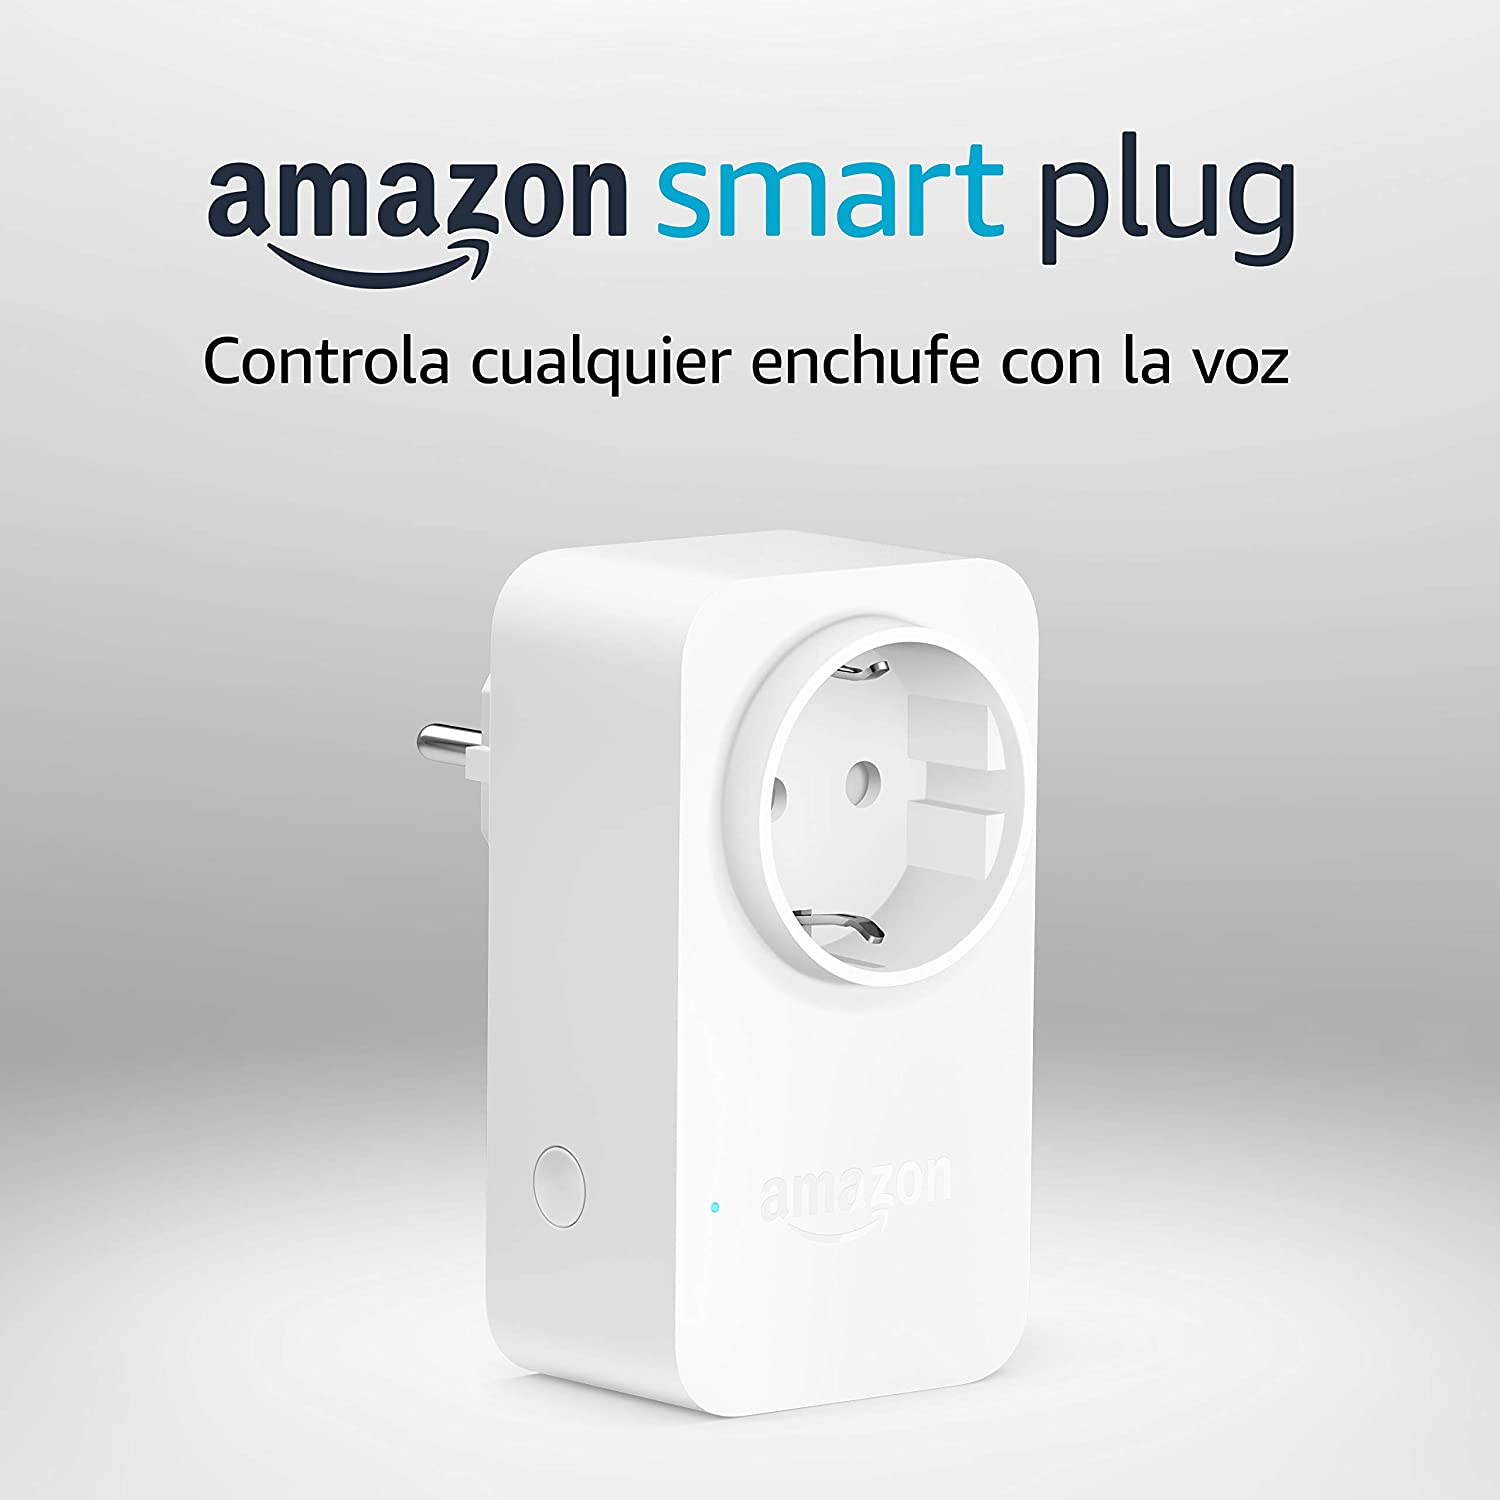 Amazon Smart Plug (enchufe inteligente wifi), compatible con Alexa